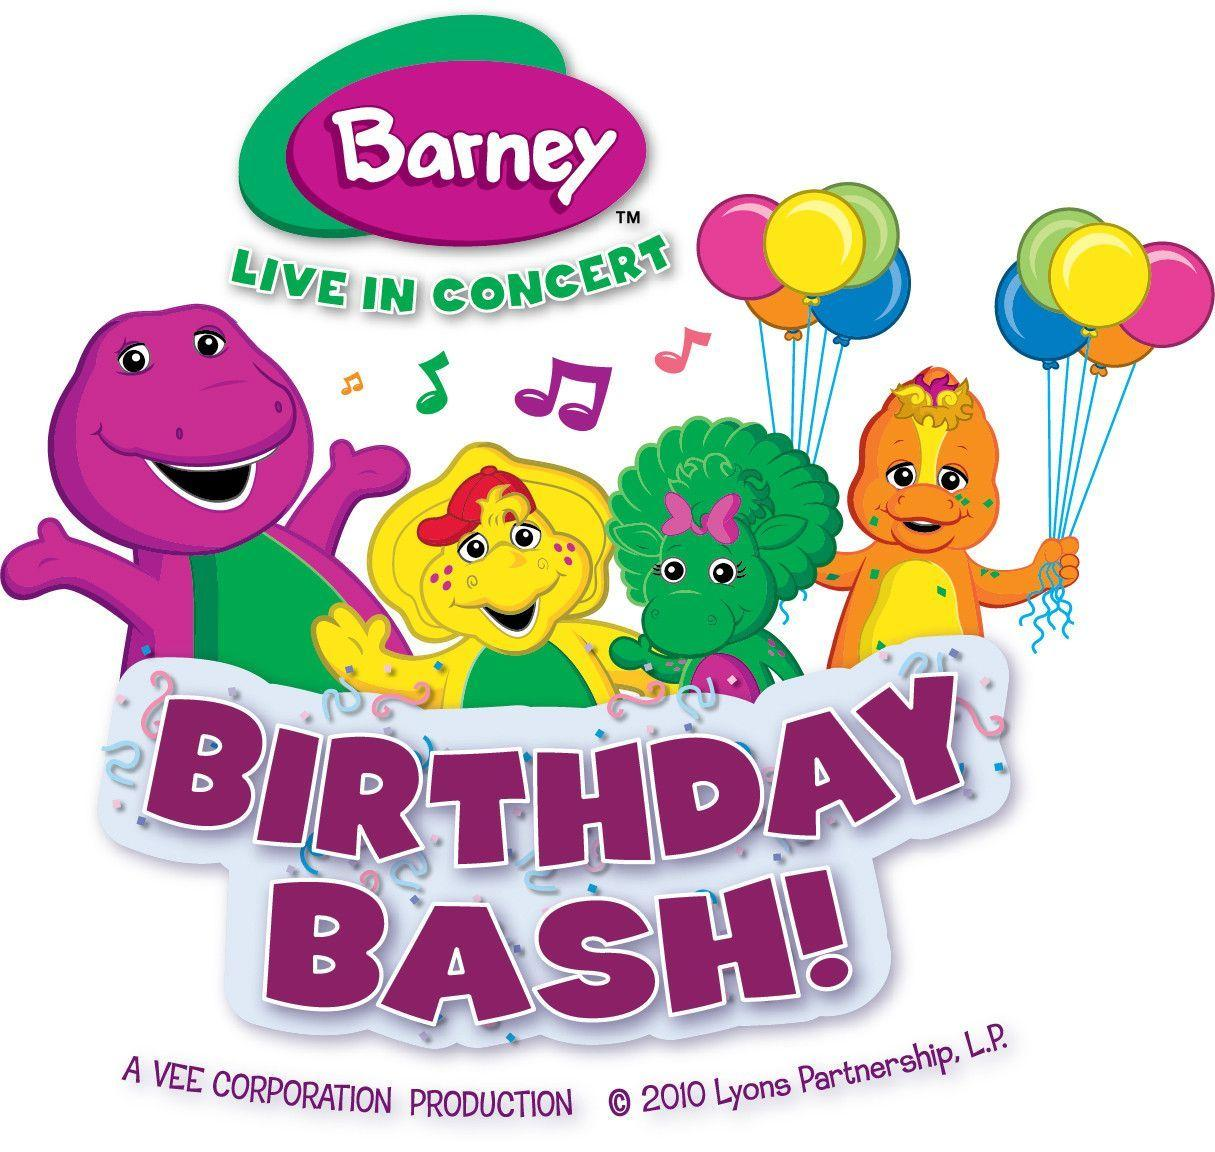 Barney and Friends Family Wallpapers Downloads for Mobile Phones